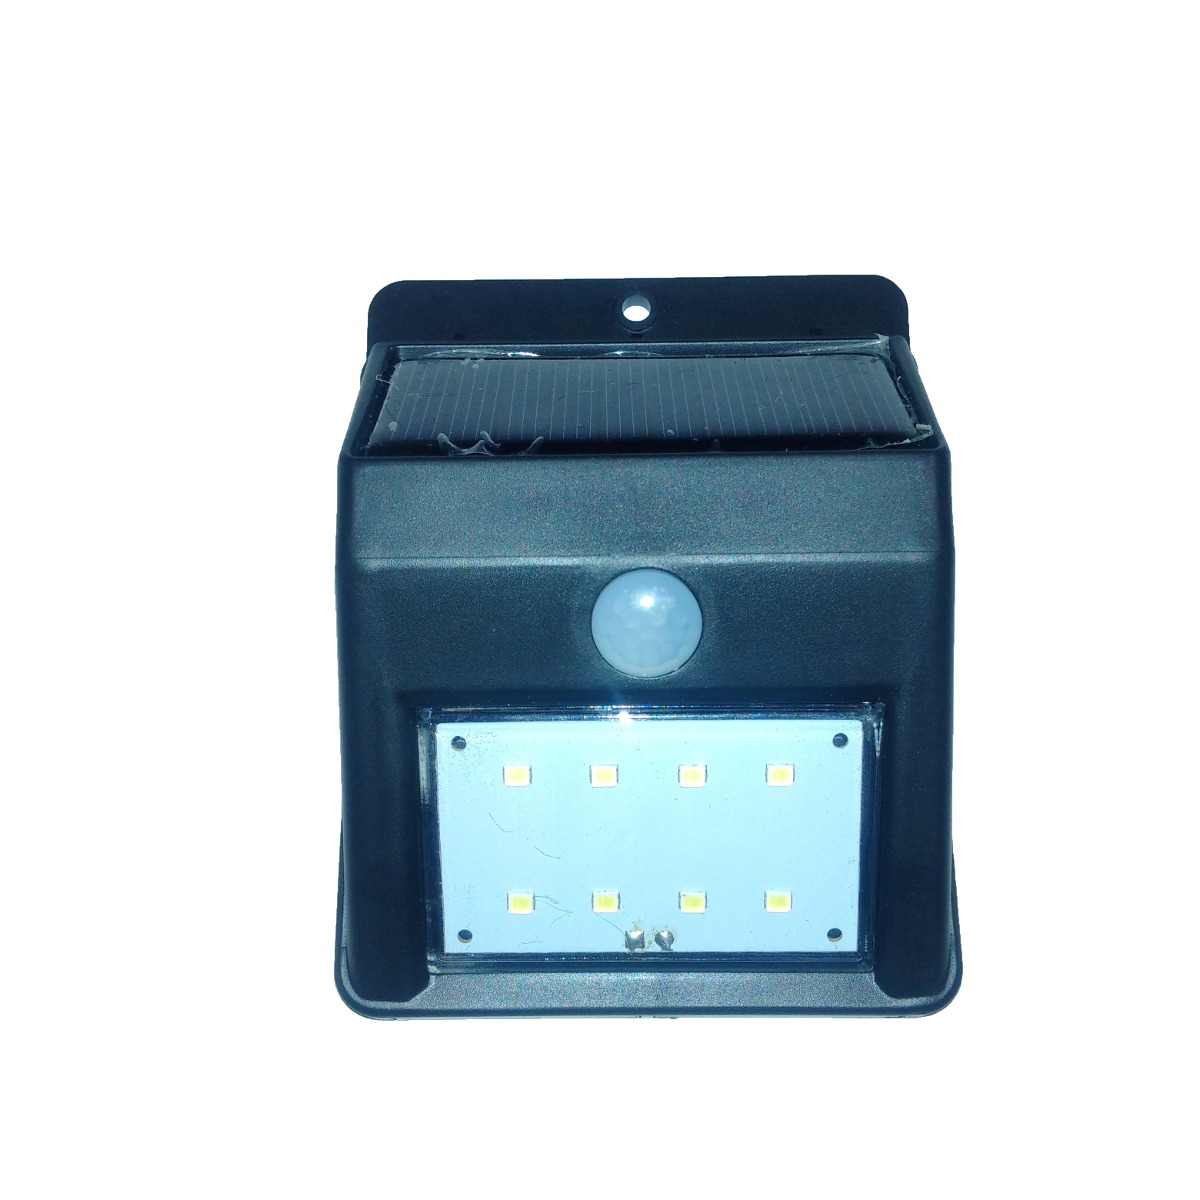 Lamparas Led Para Patios Reflector Lampara Solar 8 Led Para Patio Jardin Frente Casa